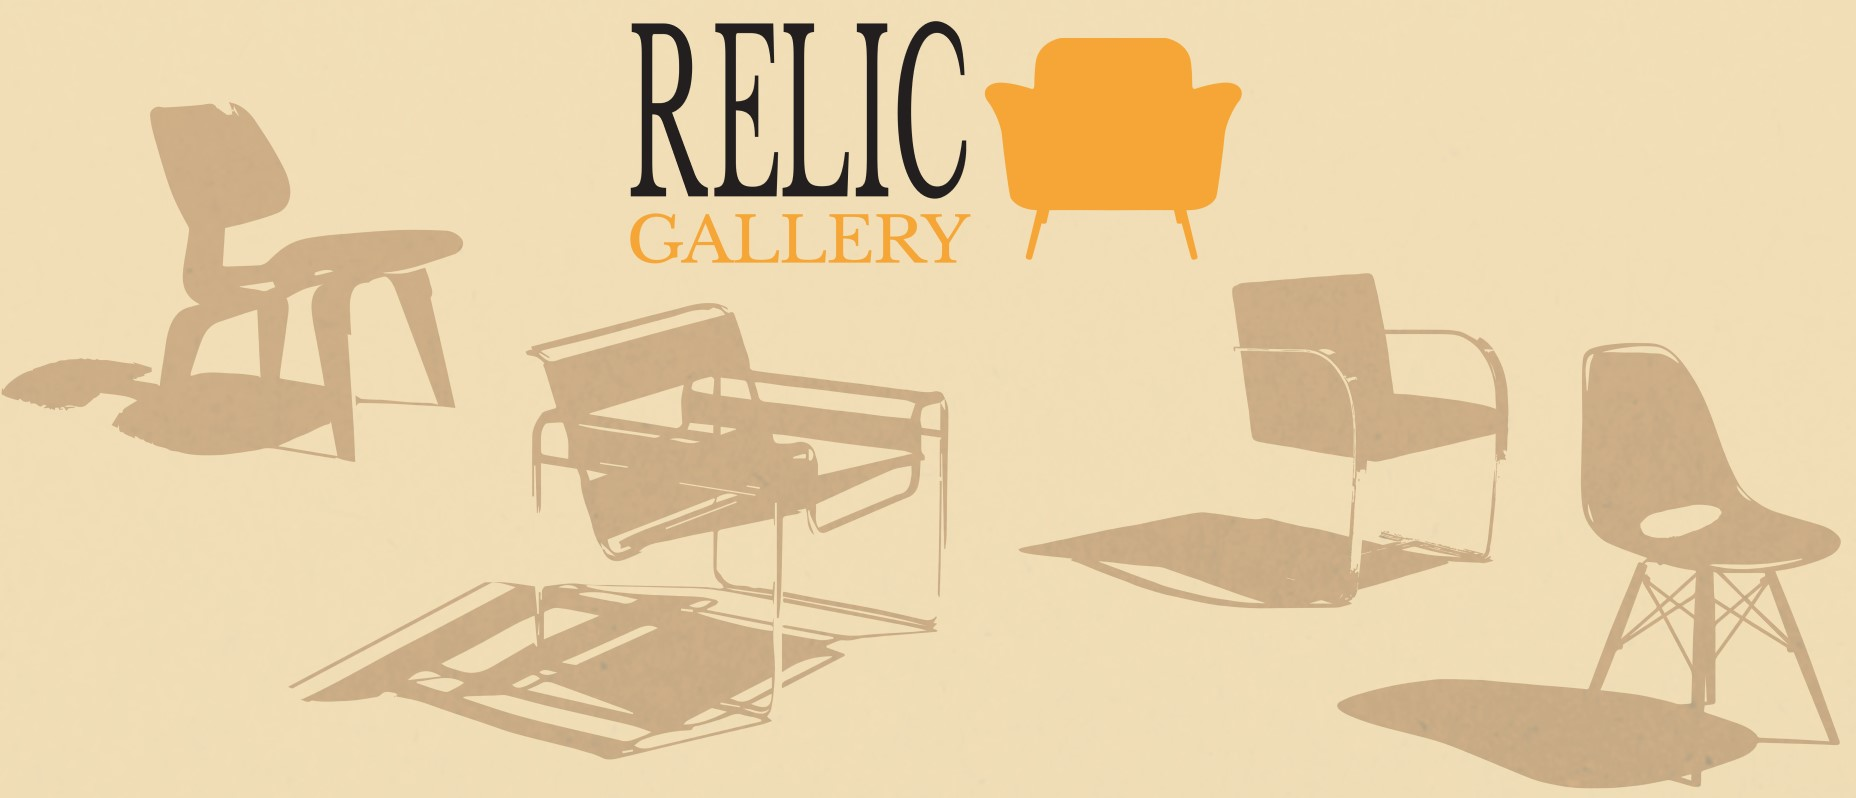 Relic Furniture Gallery